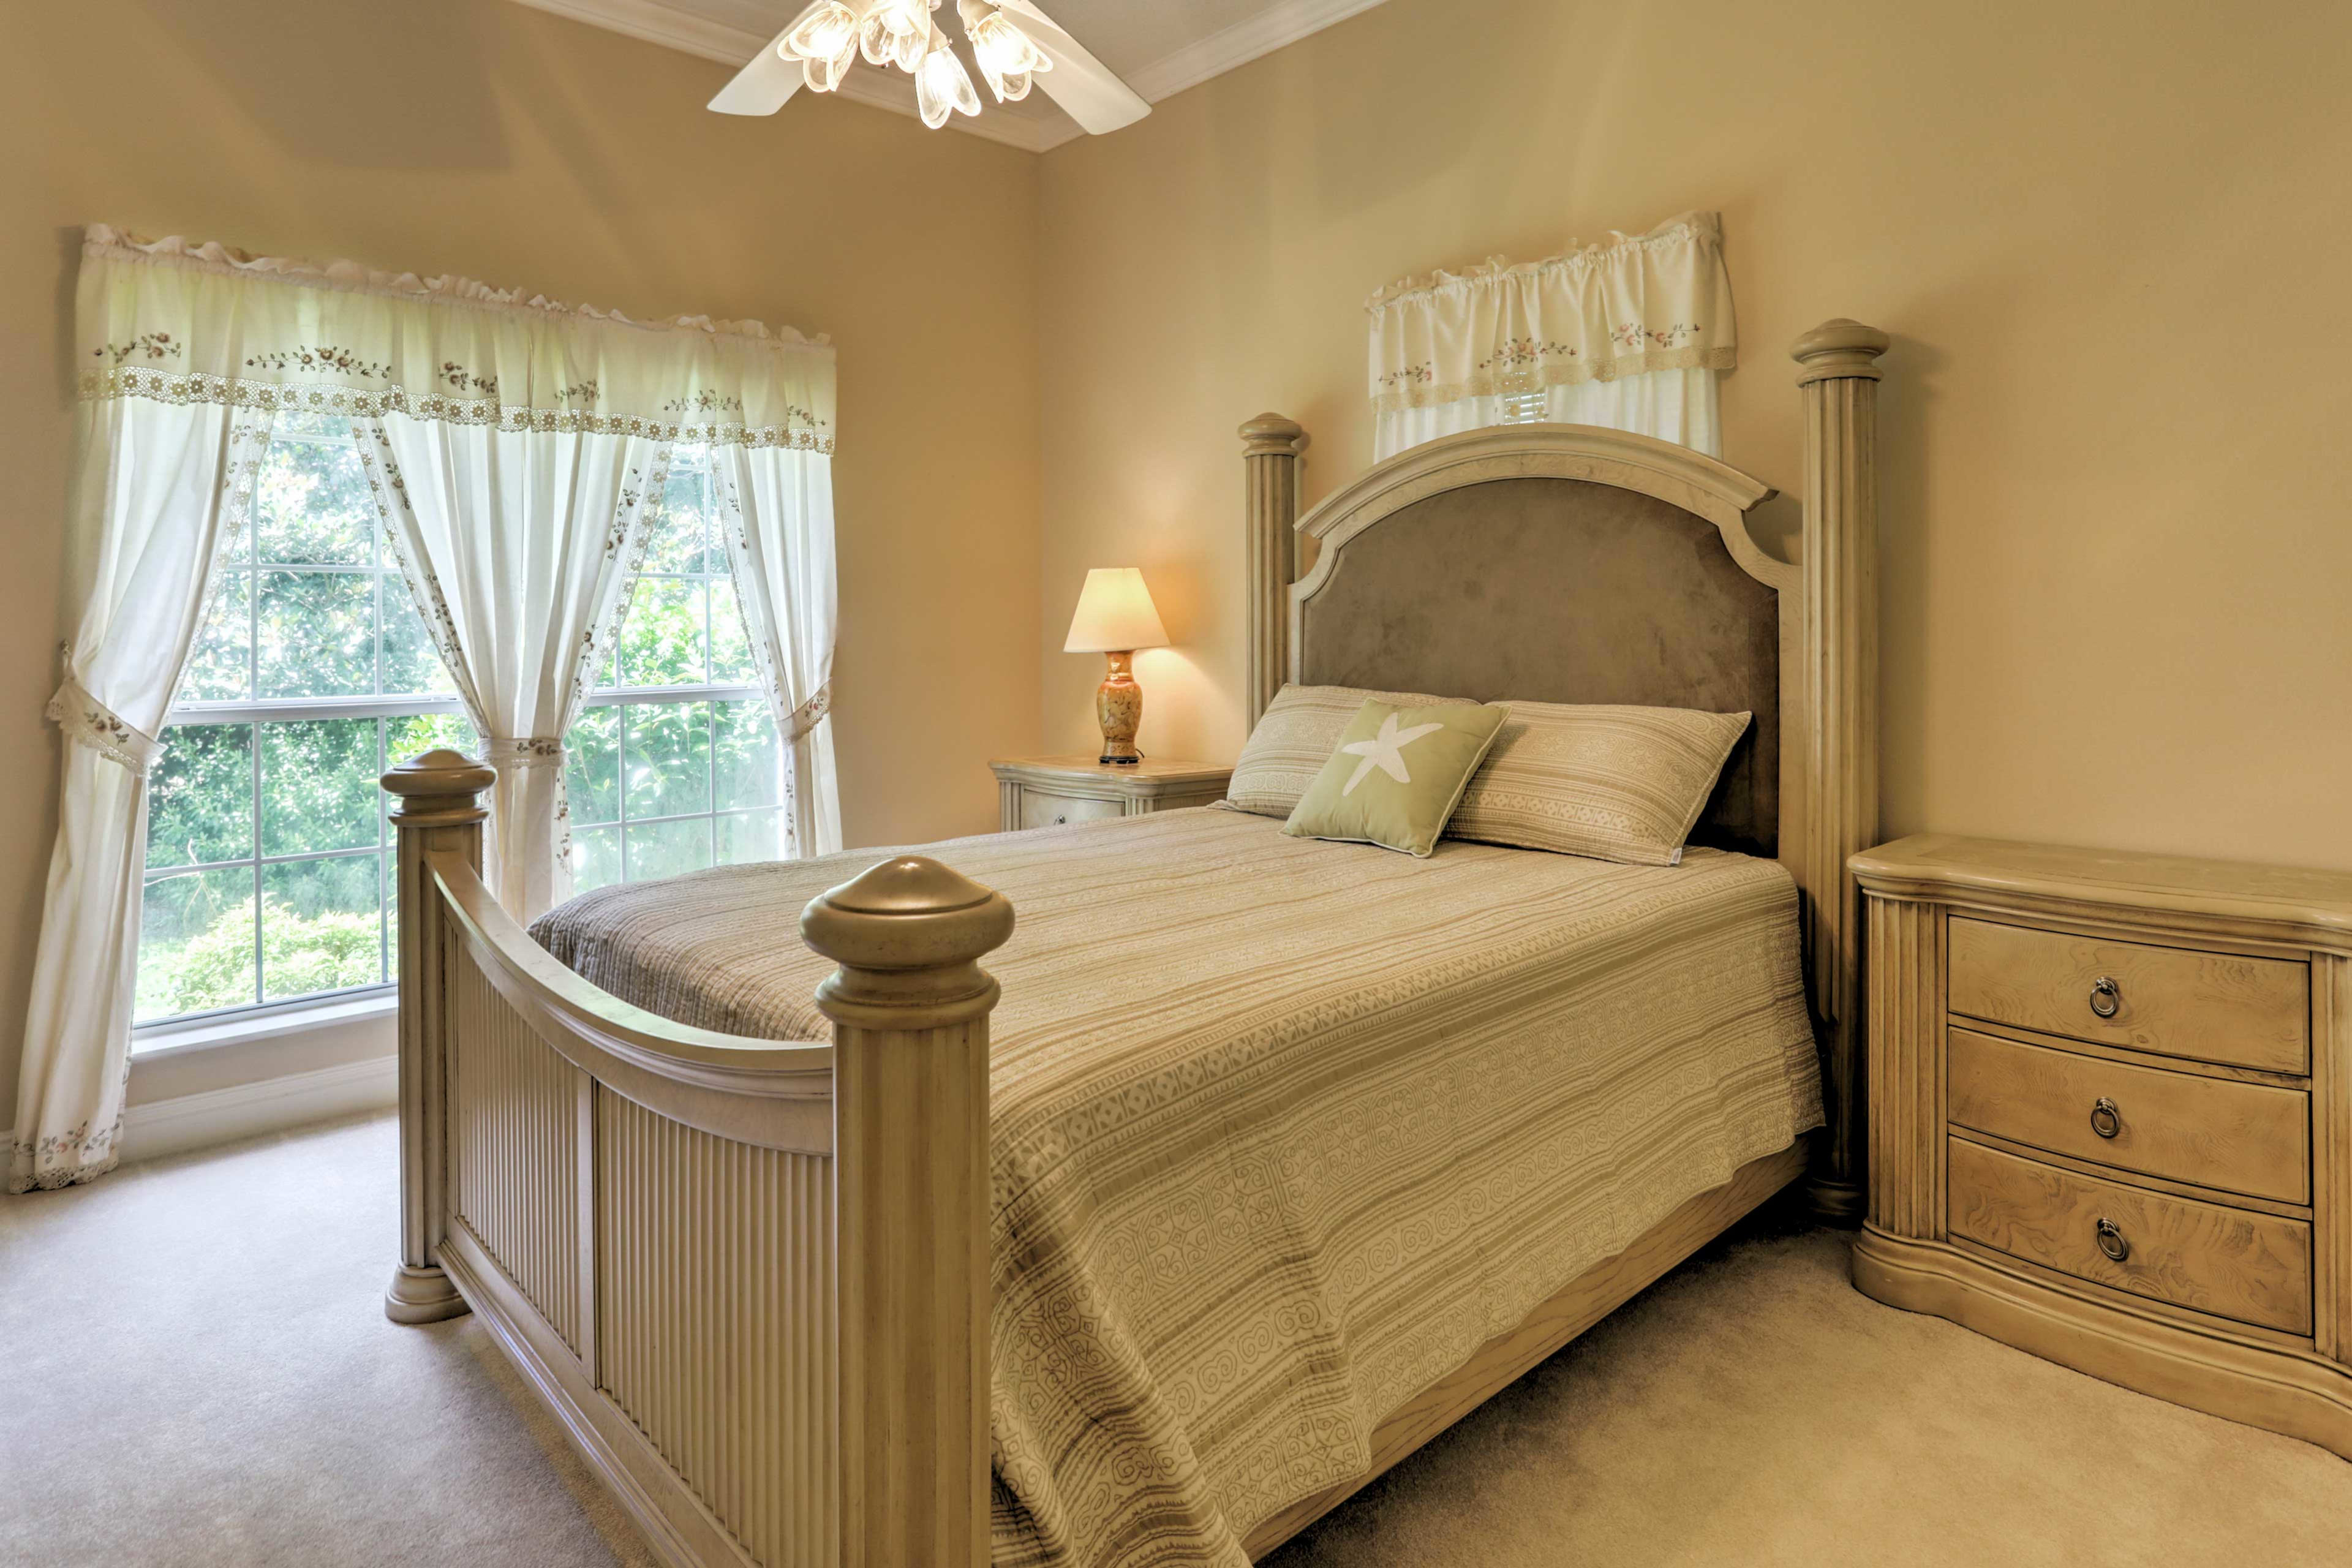 Replenish your energy after an active day in this queen bed.